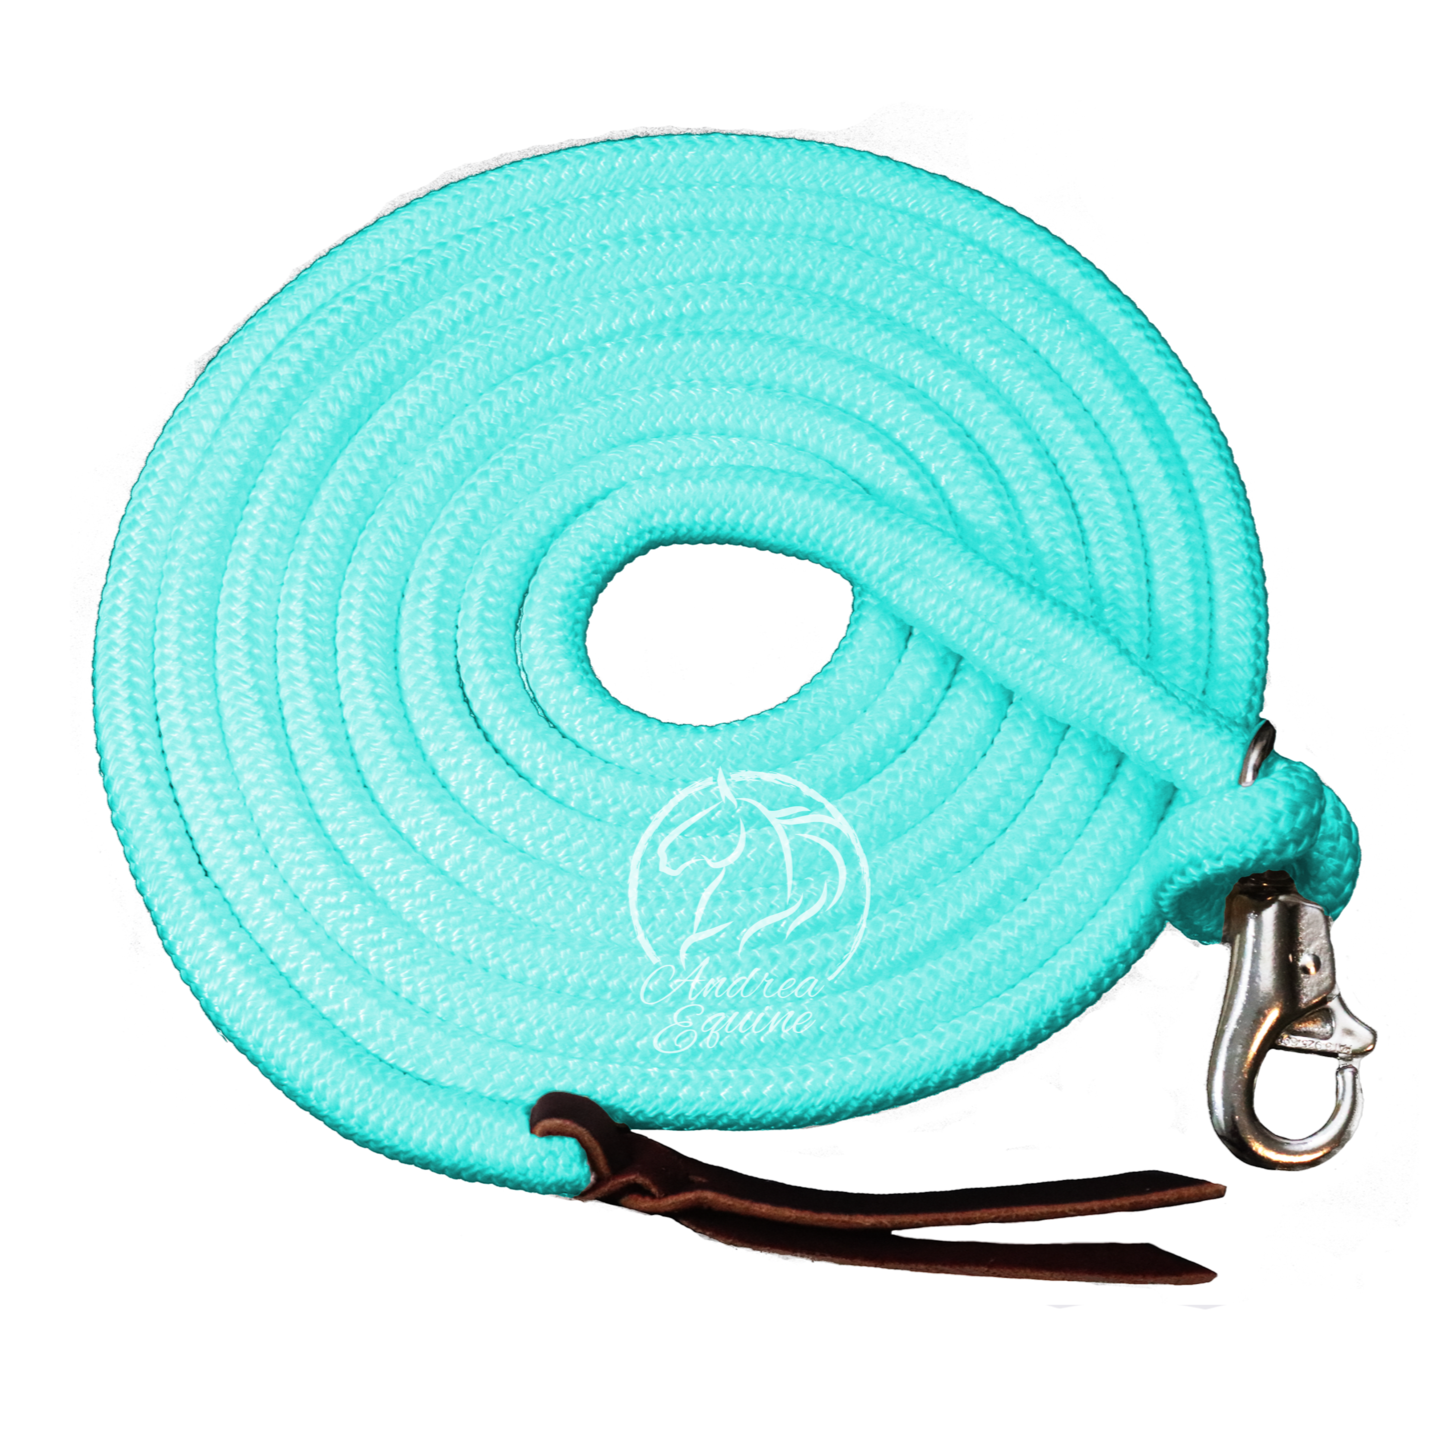 14 Ft Turquoise Clinician Weighted Leadrope w/ Snap - Andrea Equine